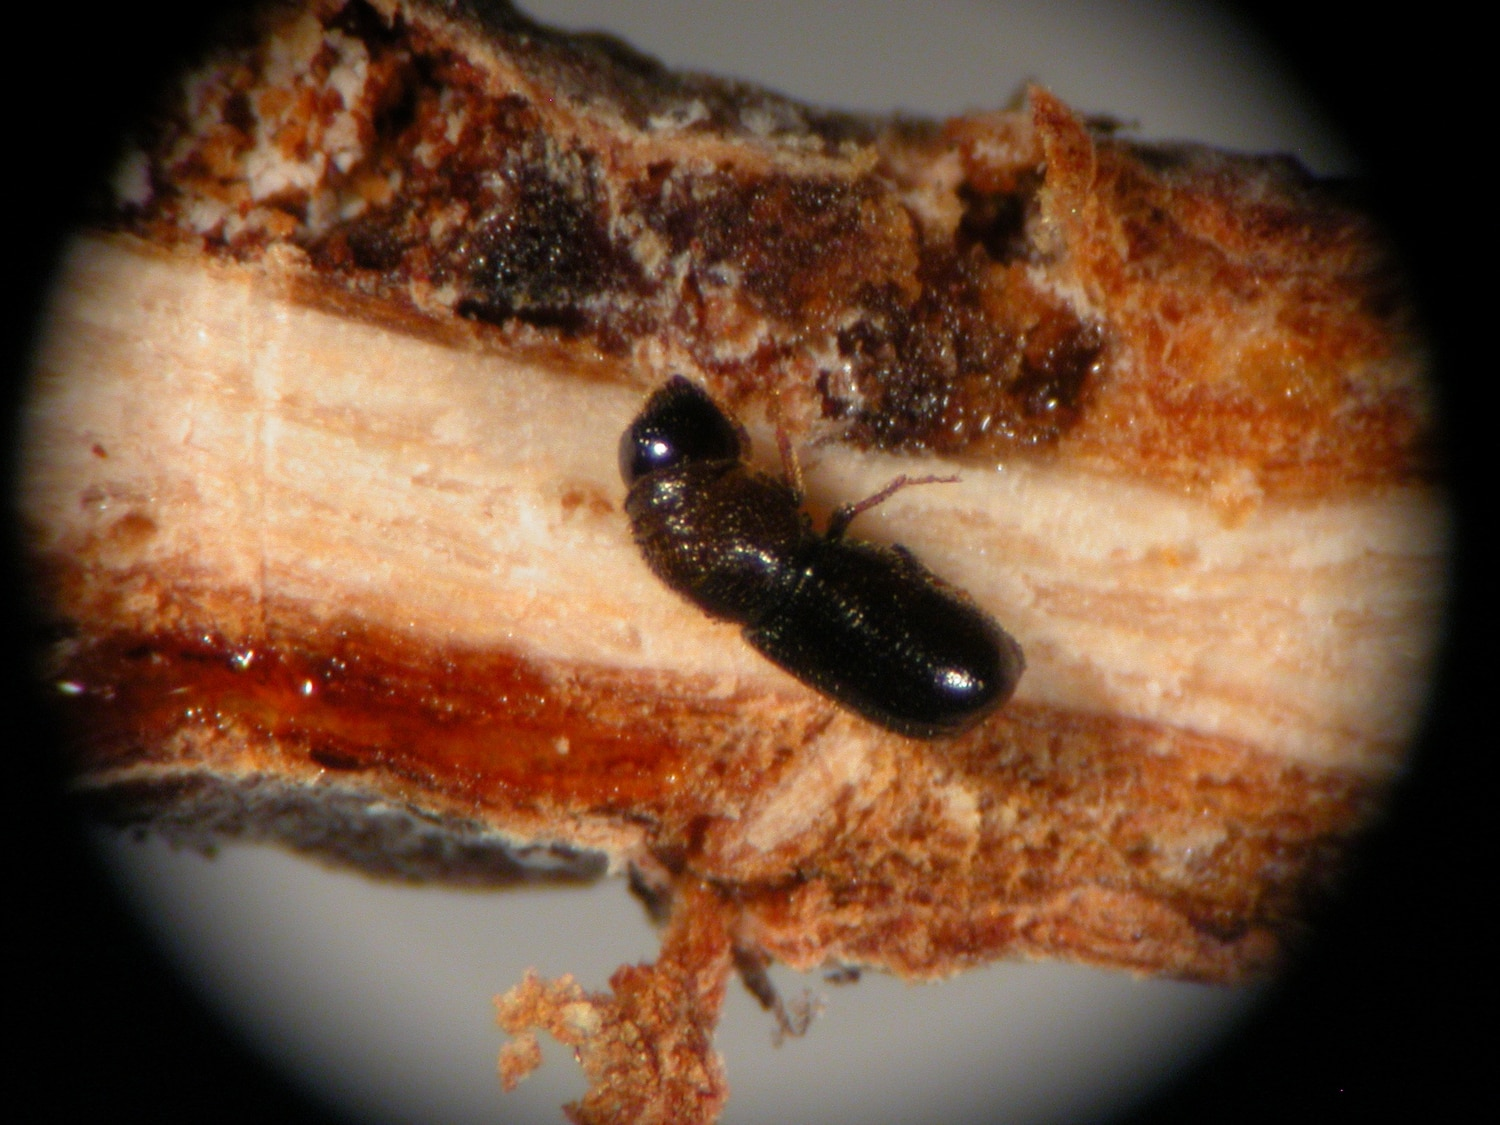 Twig beetles are munching local trees